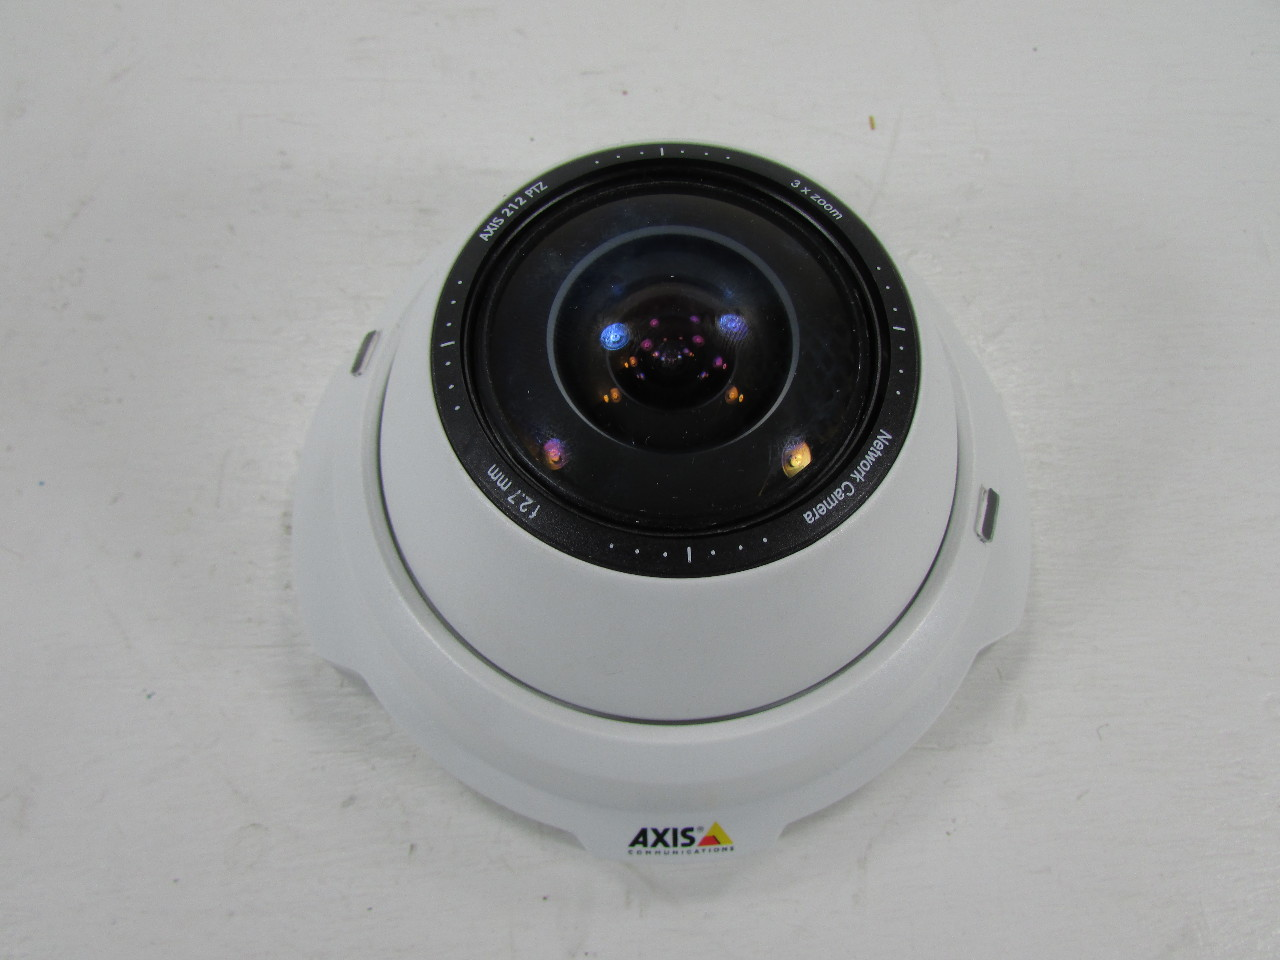 new axis 212 ptz network security camera 0257 001 04 ebay. Black Bedroom Furniture Sets. Home Design Ideas